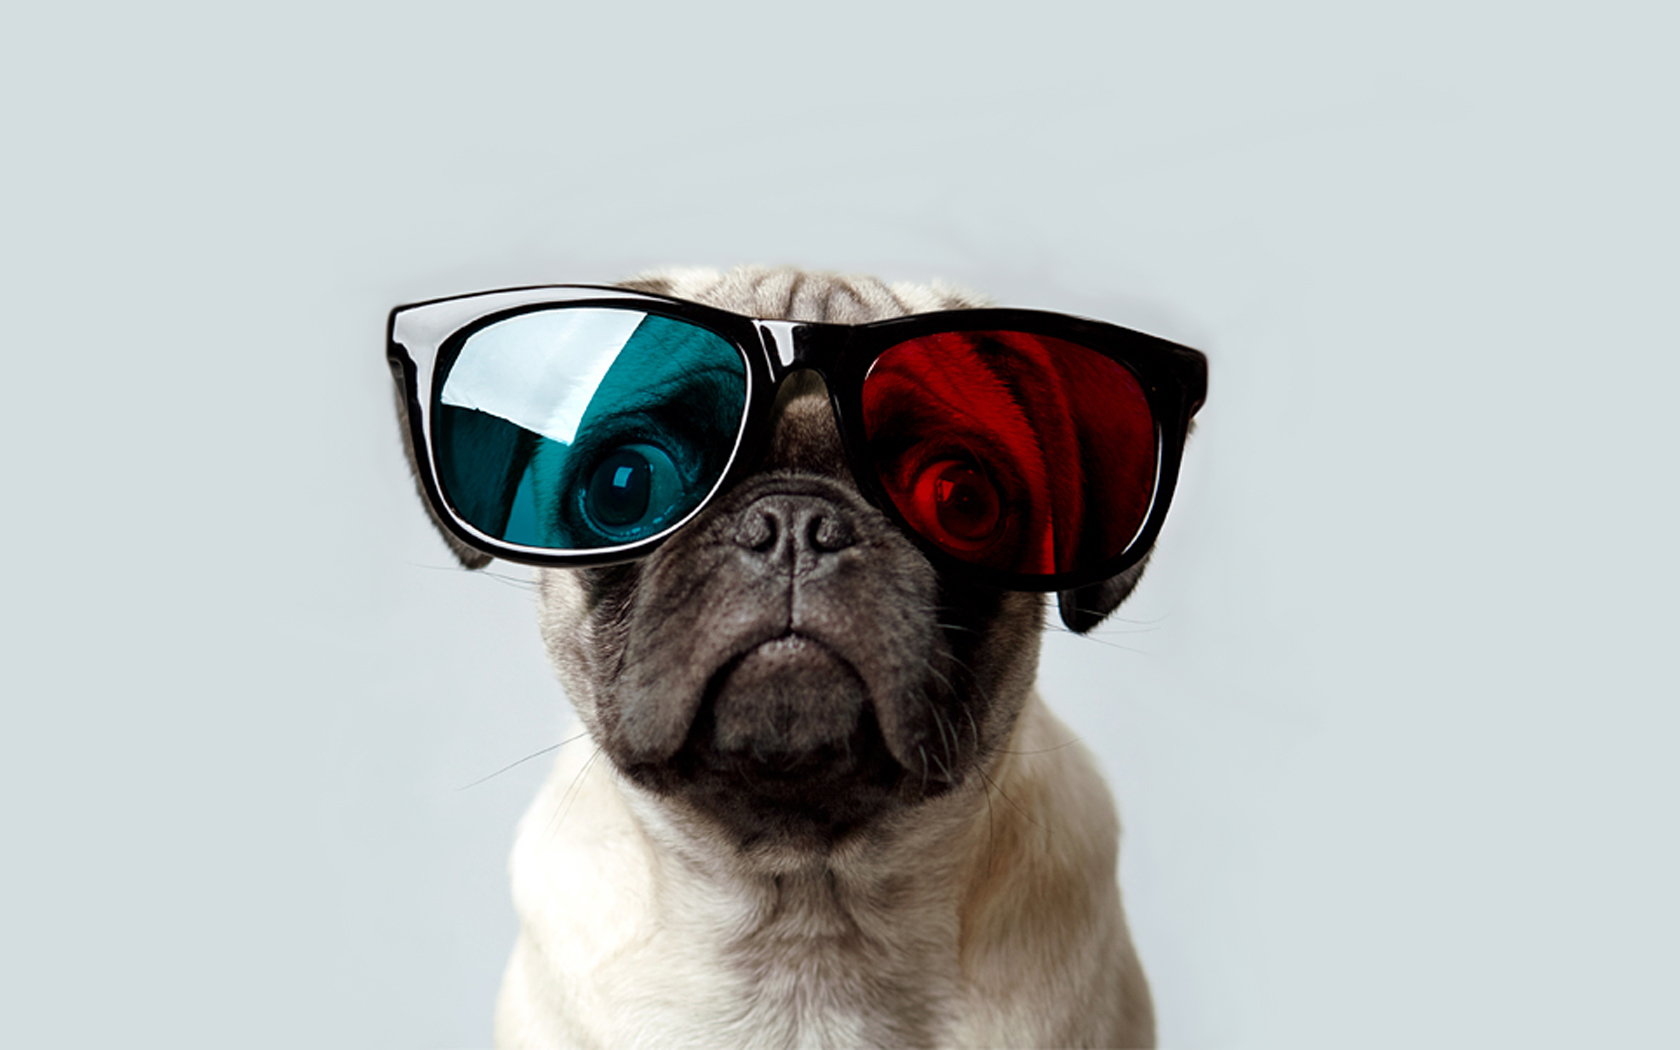 Pug Wallpaper for Walls wallpaper Pug Wallpaper for Walls hd 1680x1050